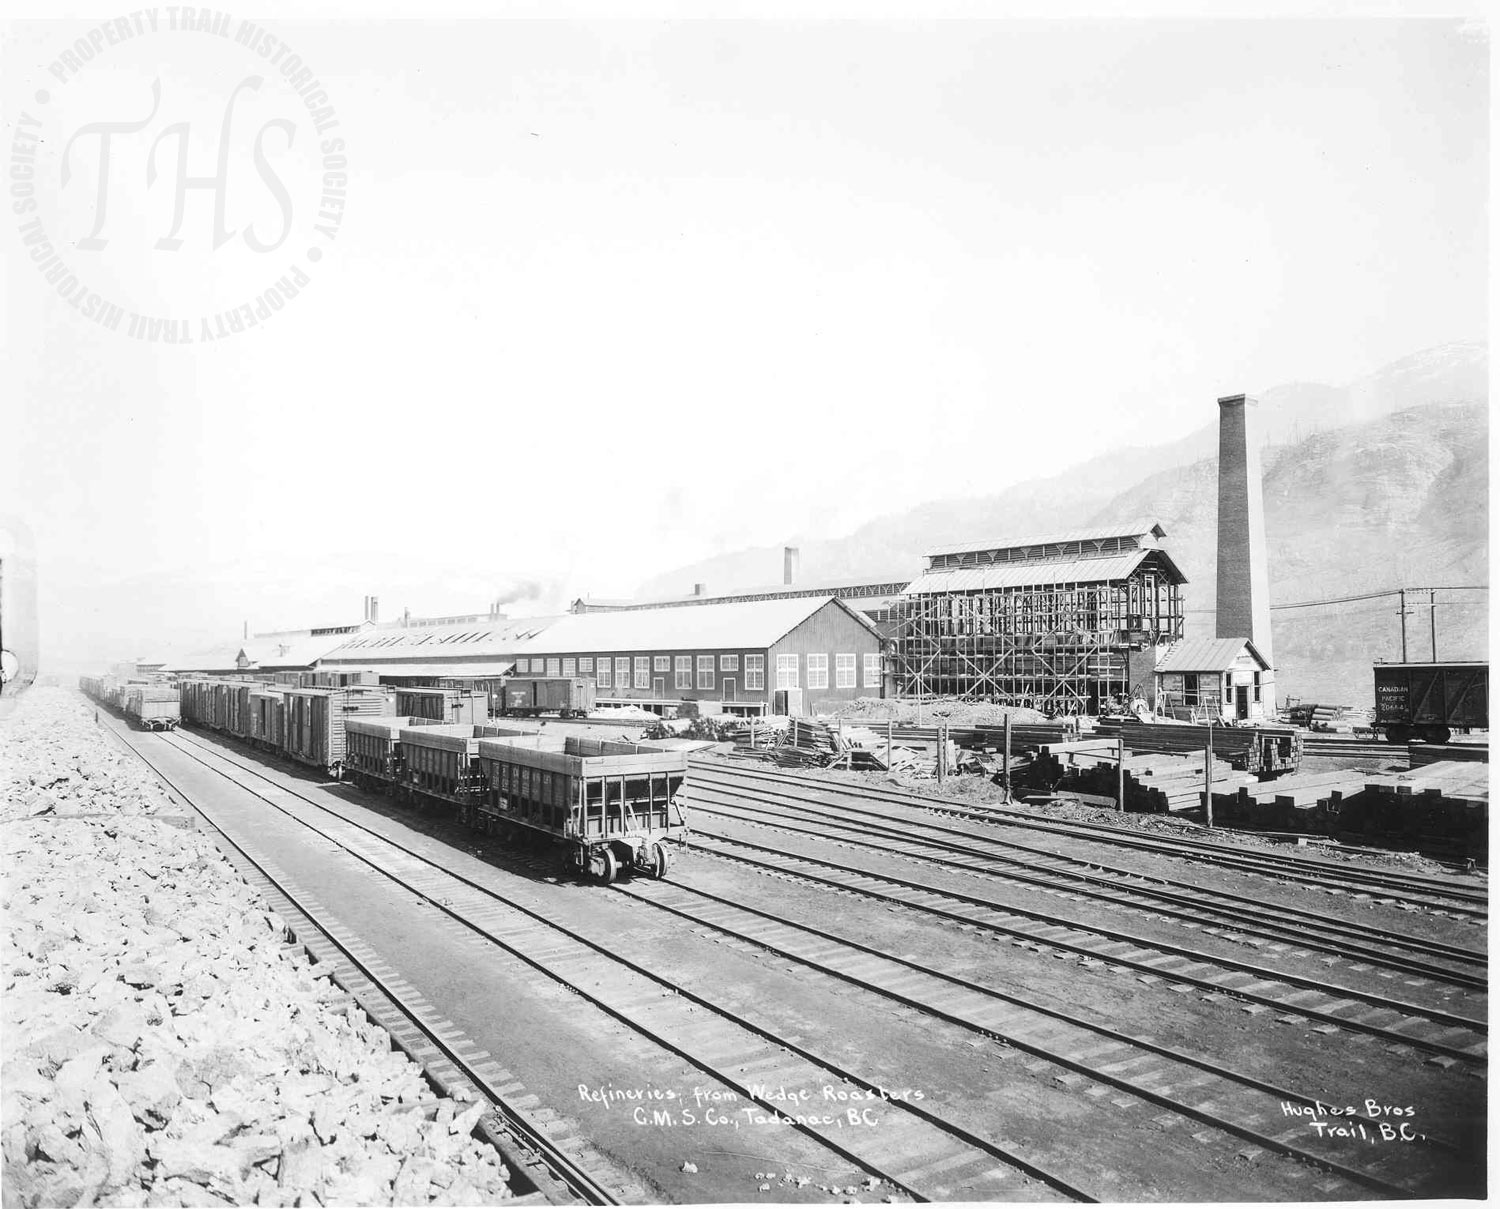 Refinery from wedge roaster, Trail Smelter (Hughes) - 1930